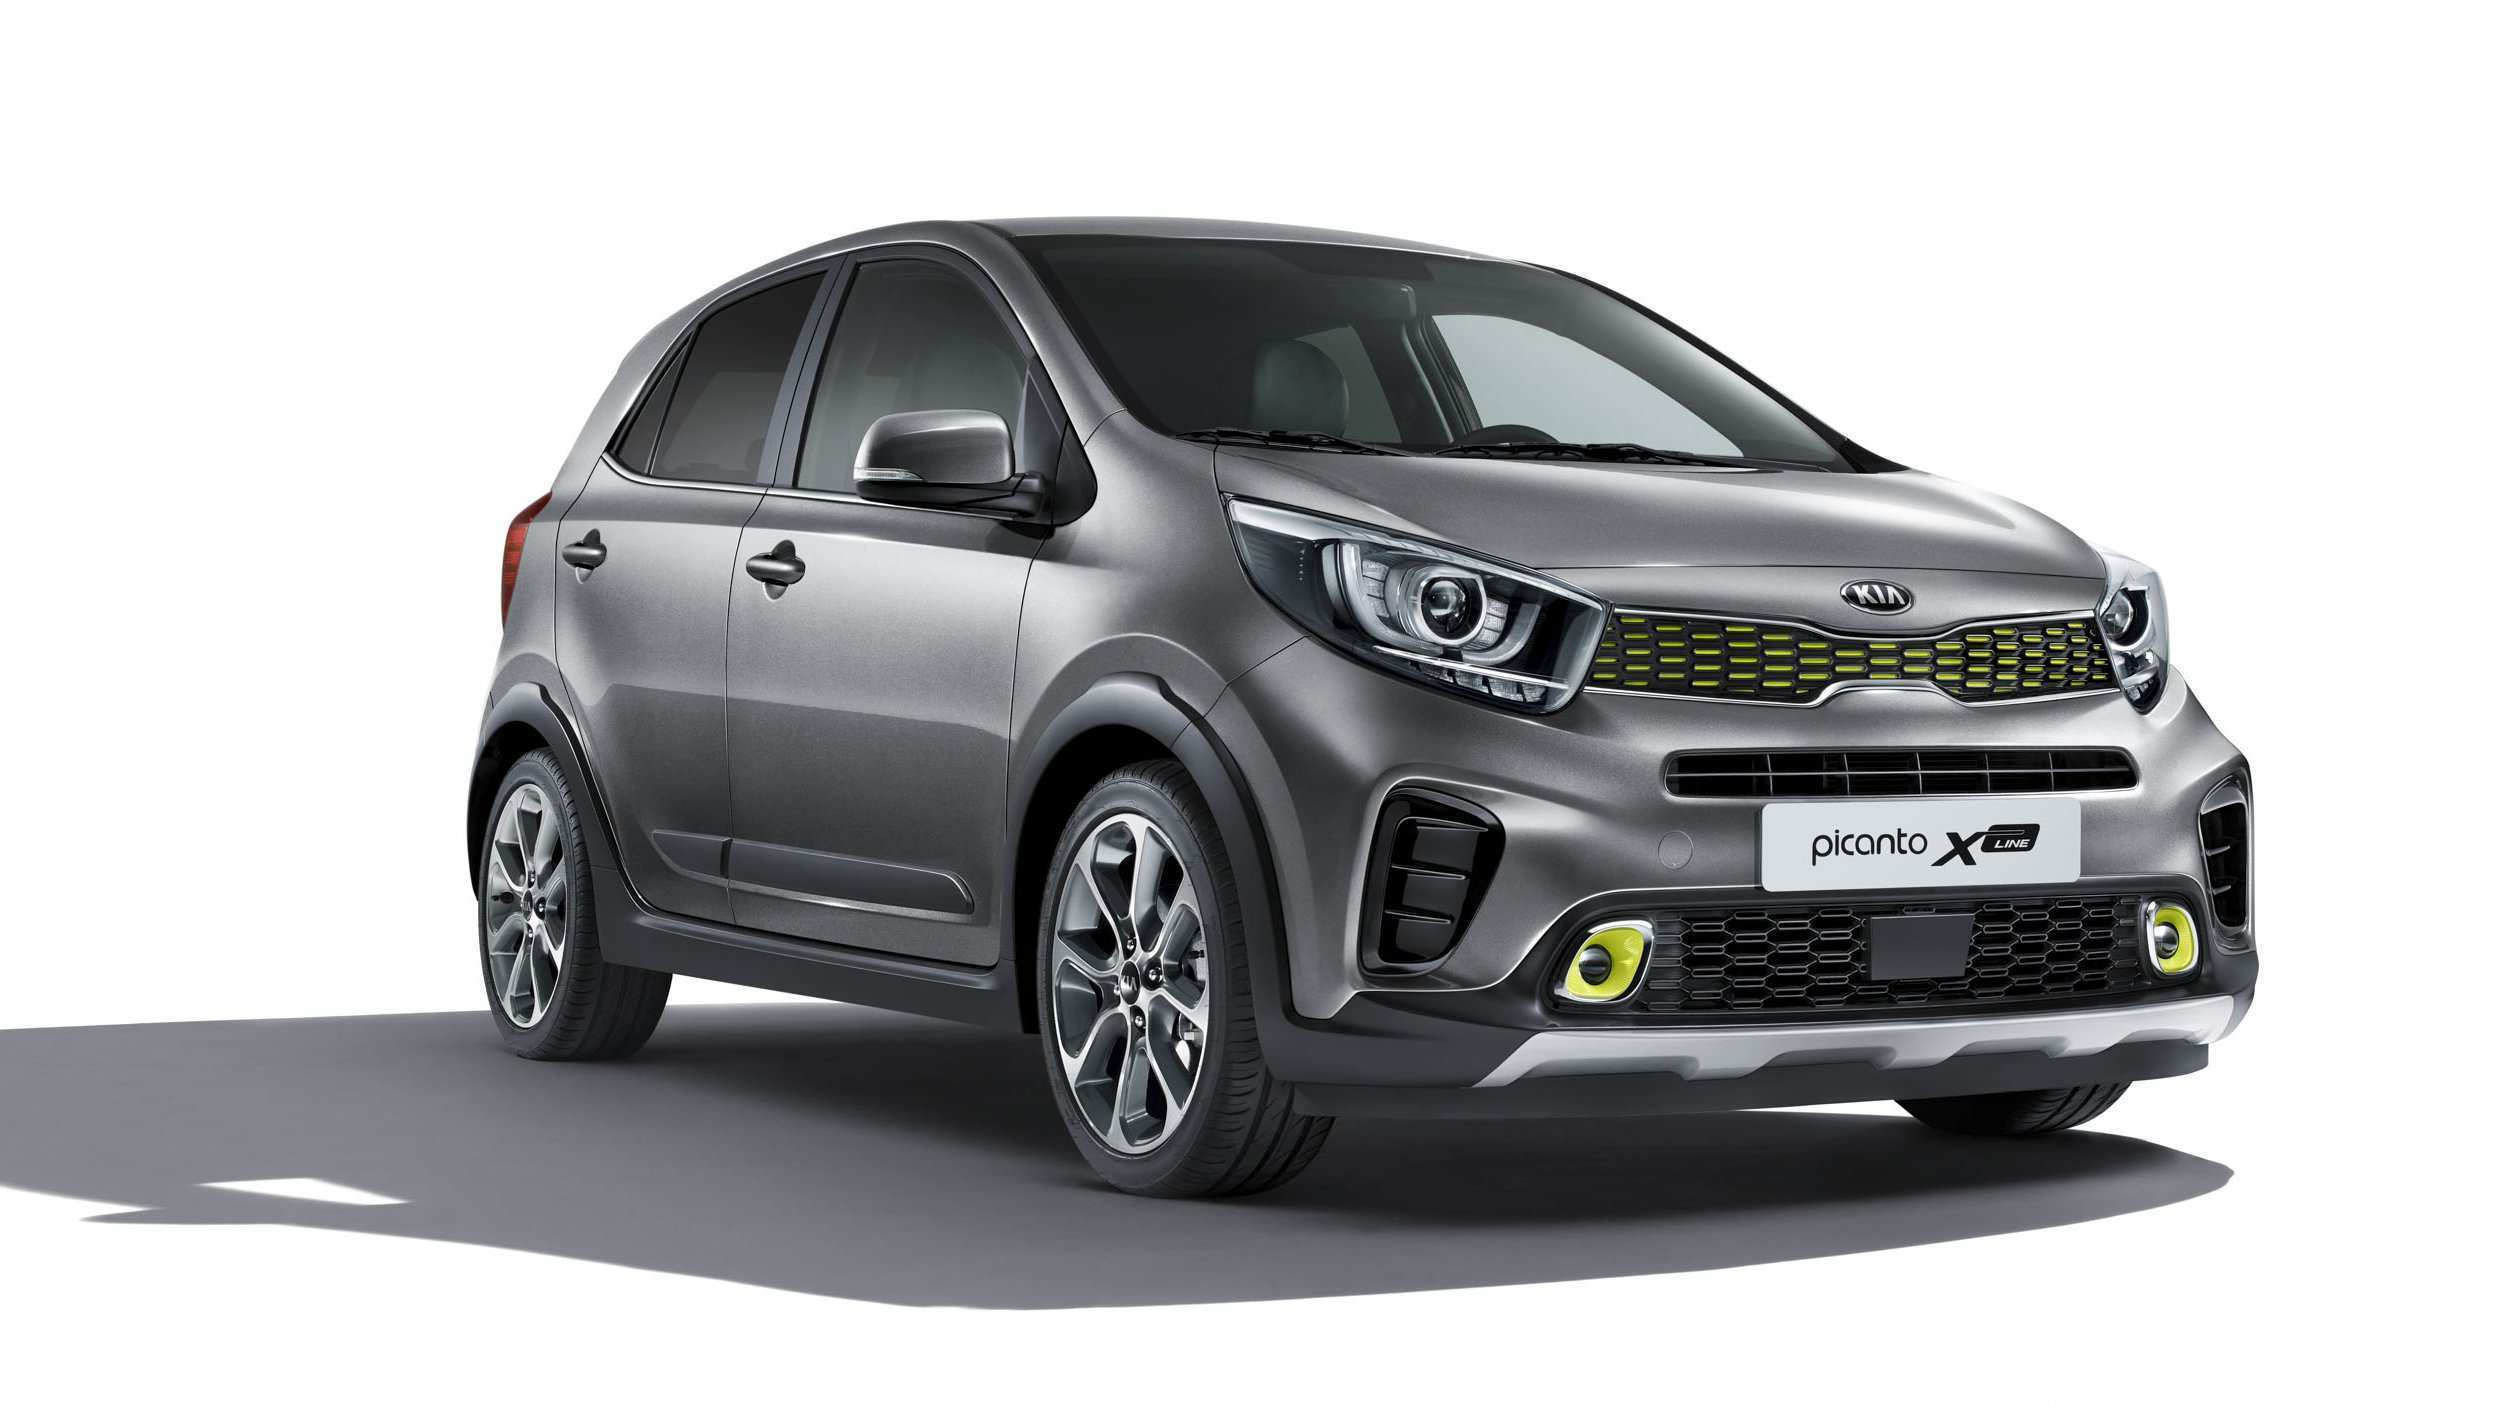 29 New Kia Picanto 2019 Xline Performance with Kia Picanto 2019 Xline